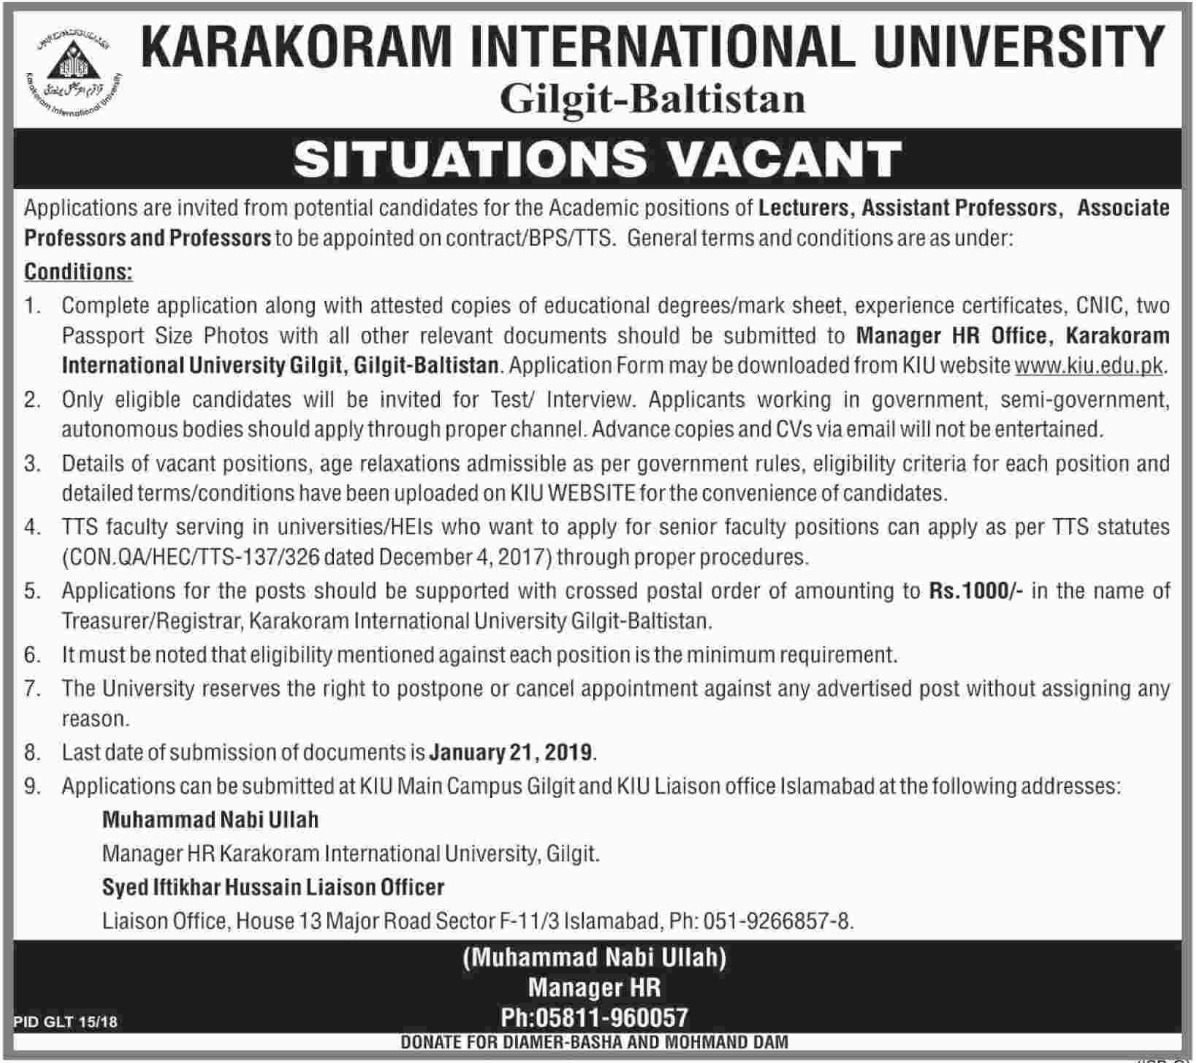 Karakoram International University Gilgit Baltistan Jobs 2019